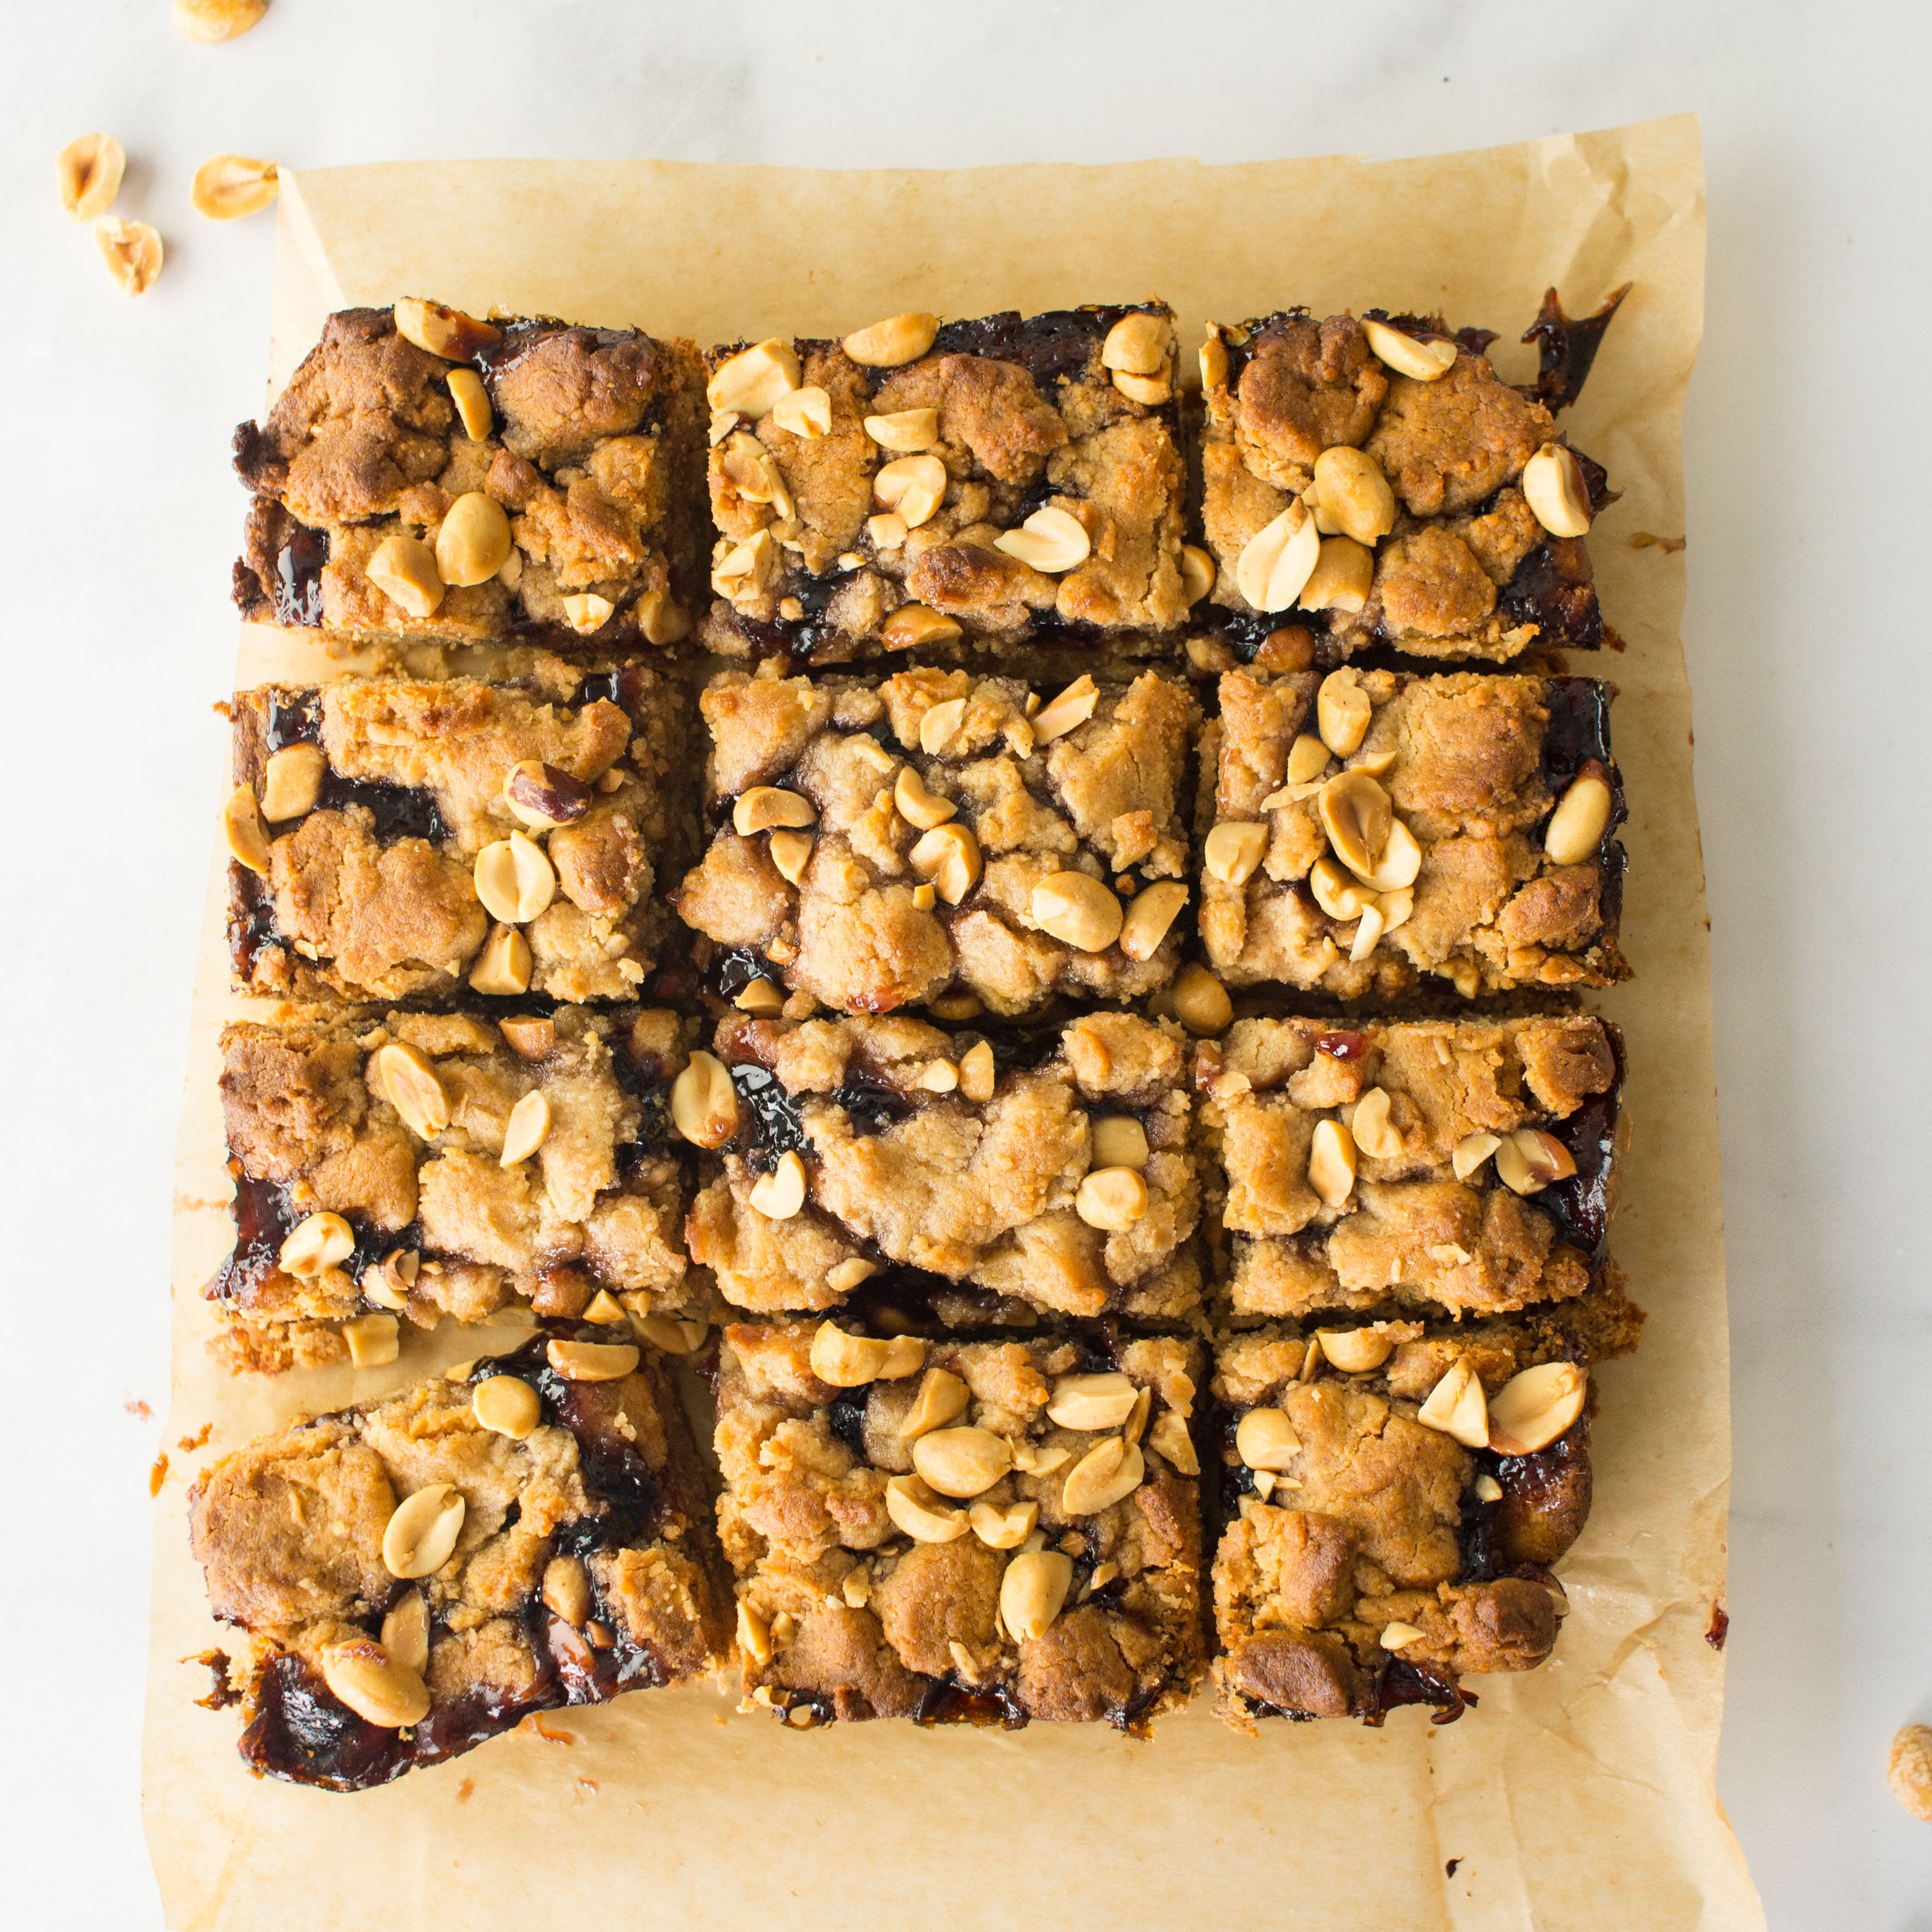 vegan pb and j bars on parchment paper